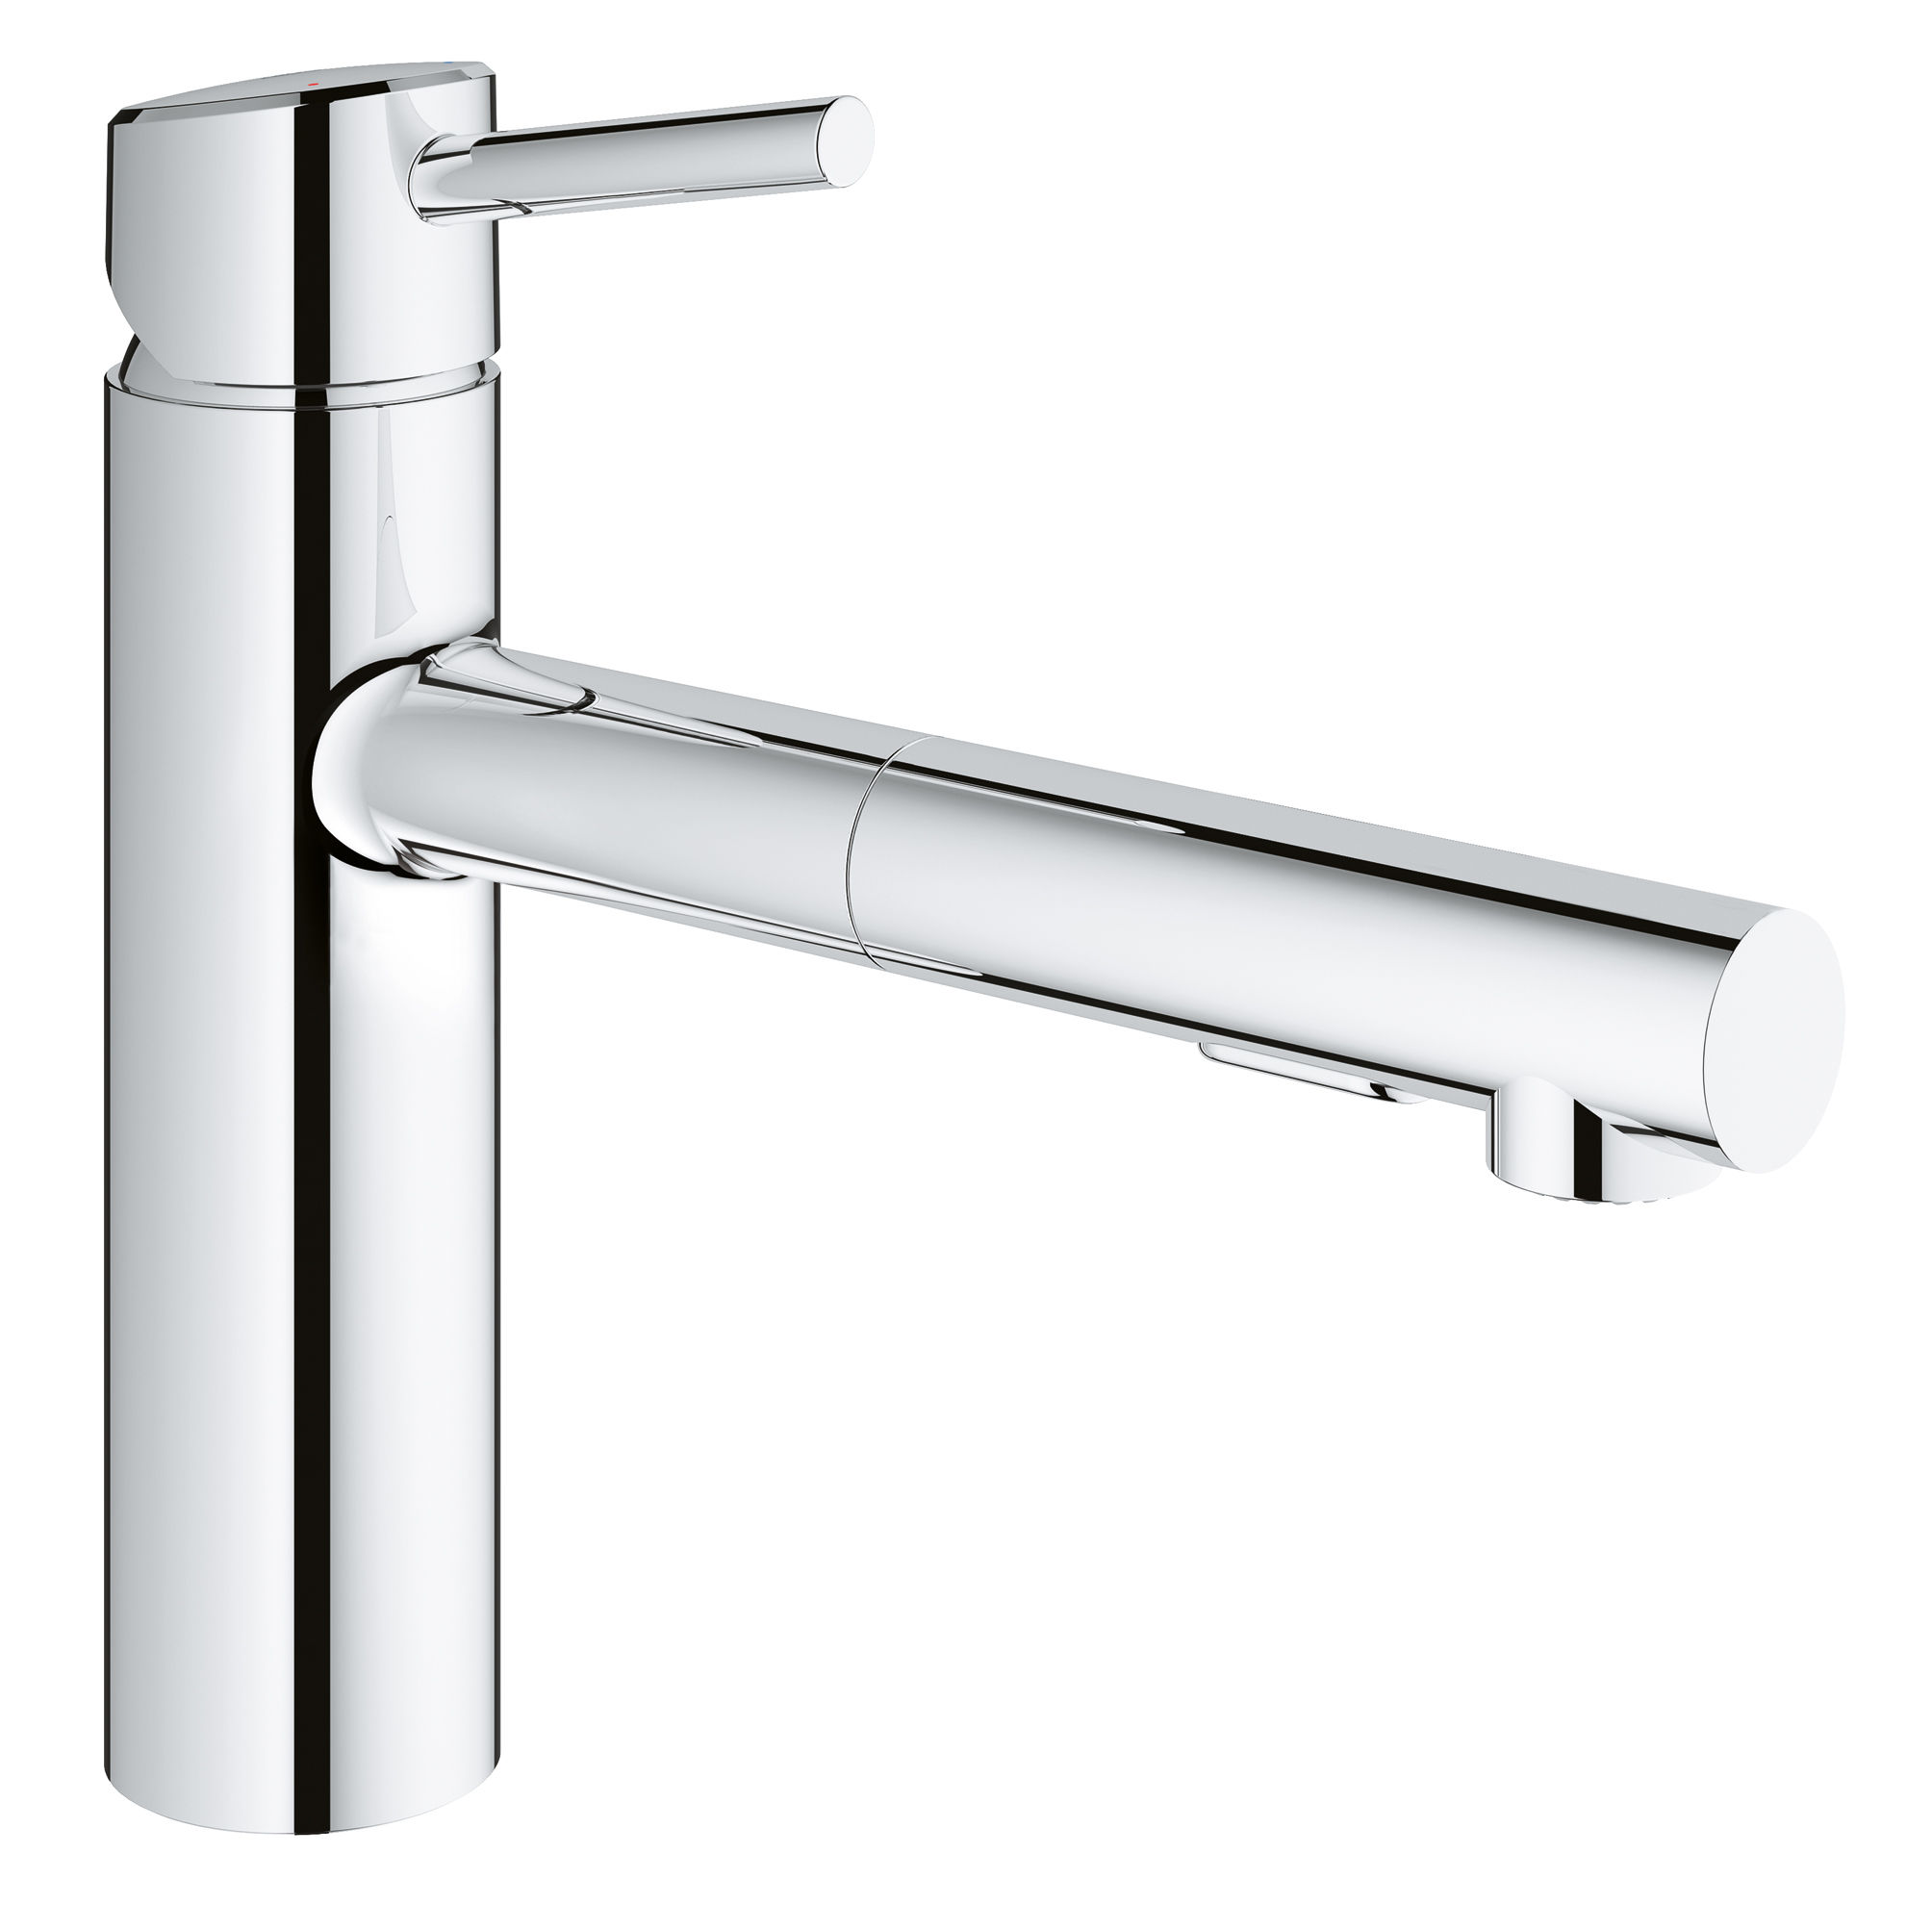 Grohe 31453001 Starlight Chrome Concetto Pull-Out Kitchen Faucet ...